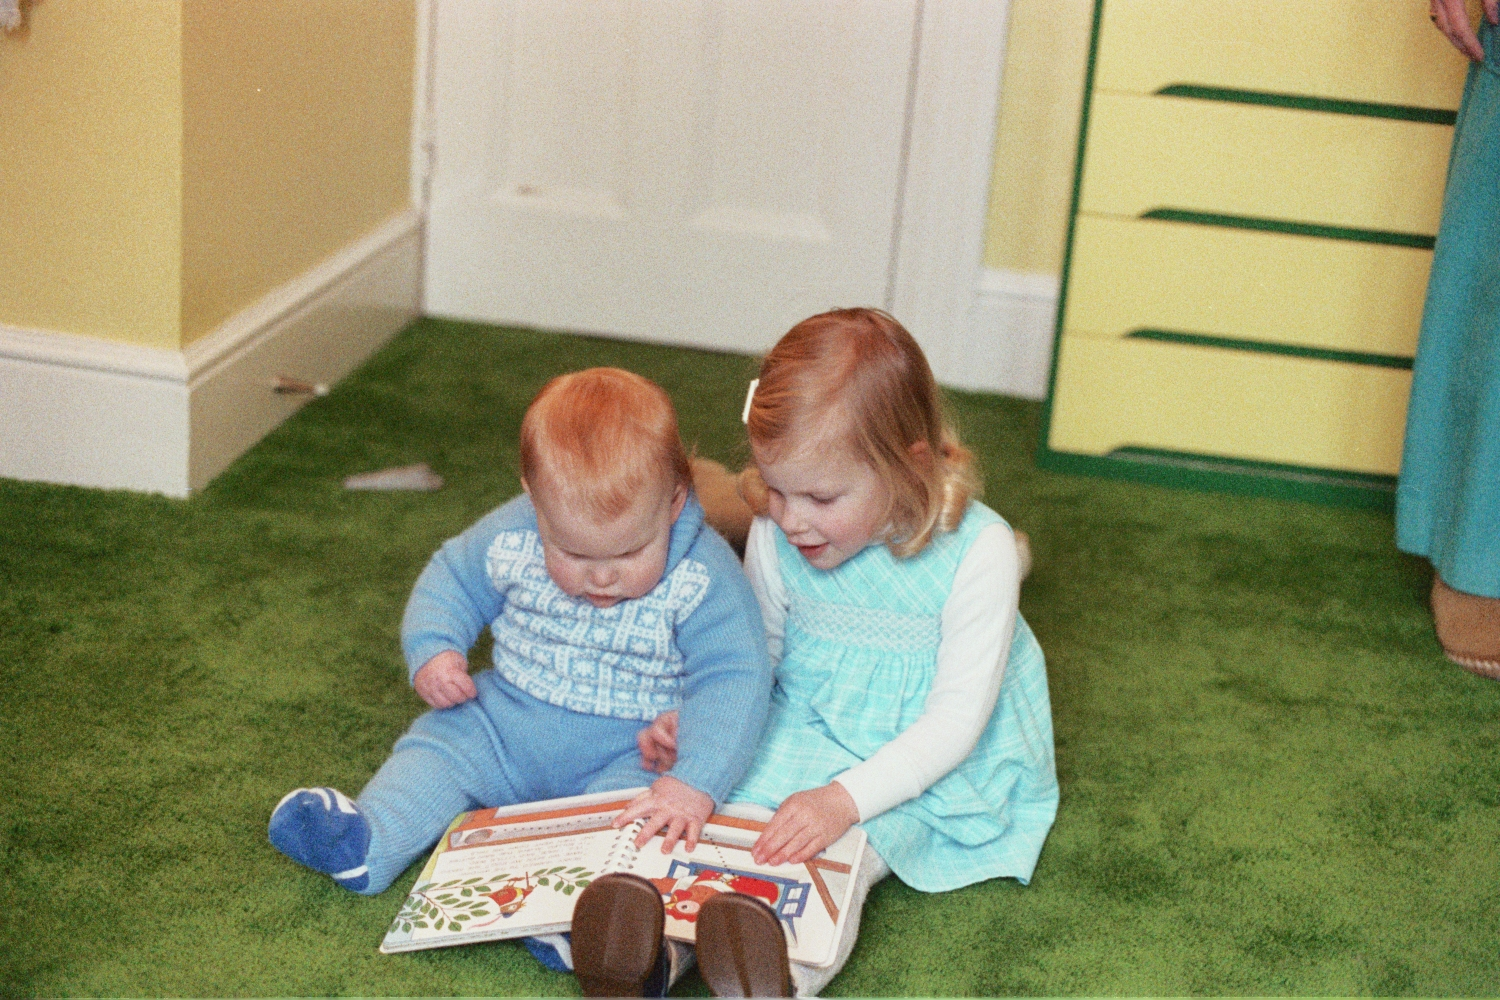 Ed Shearer and Amy Shearer in 1978 in Woodford, reading a book